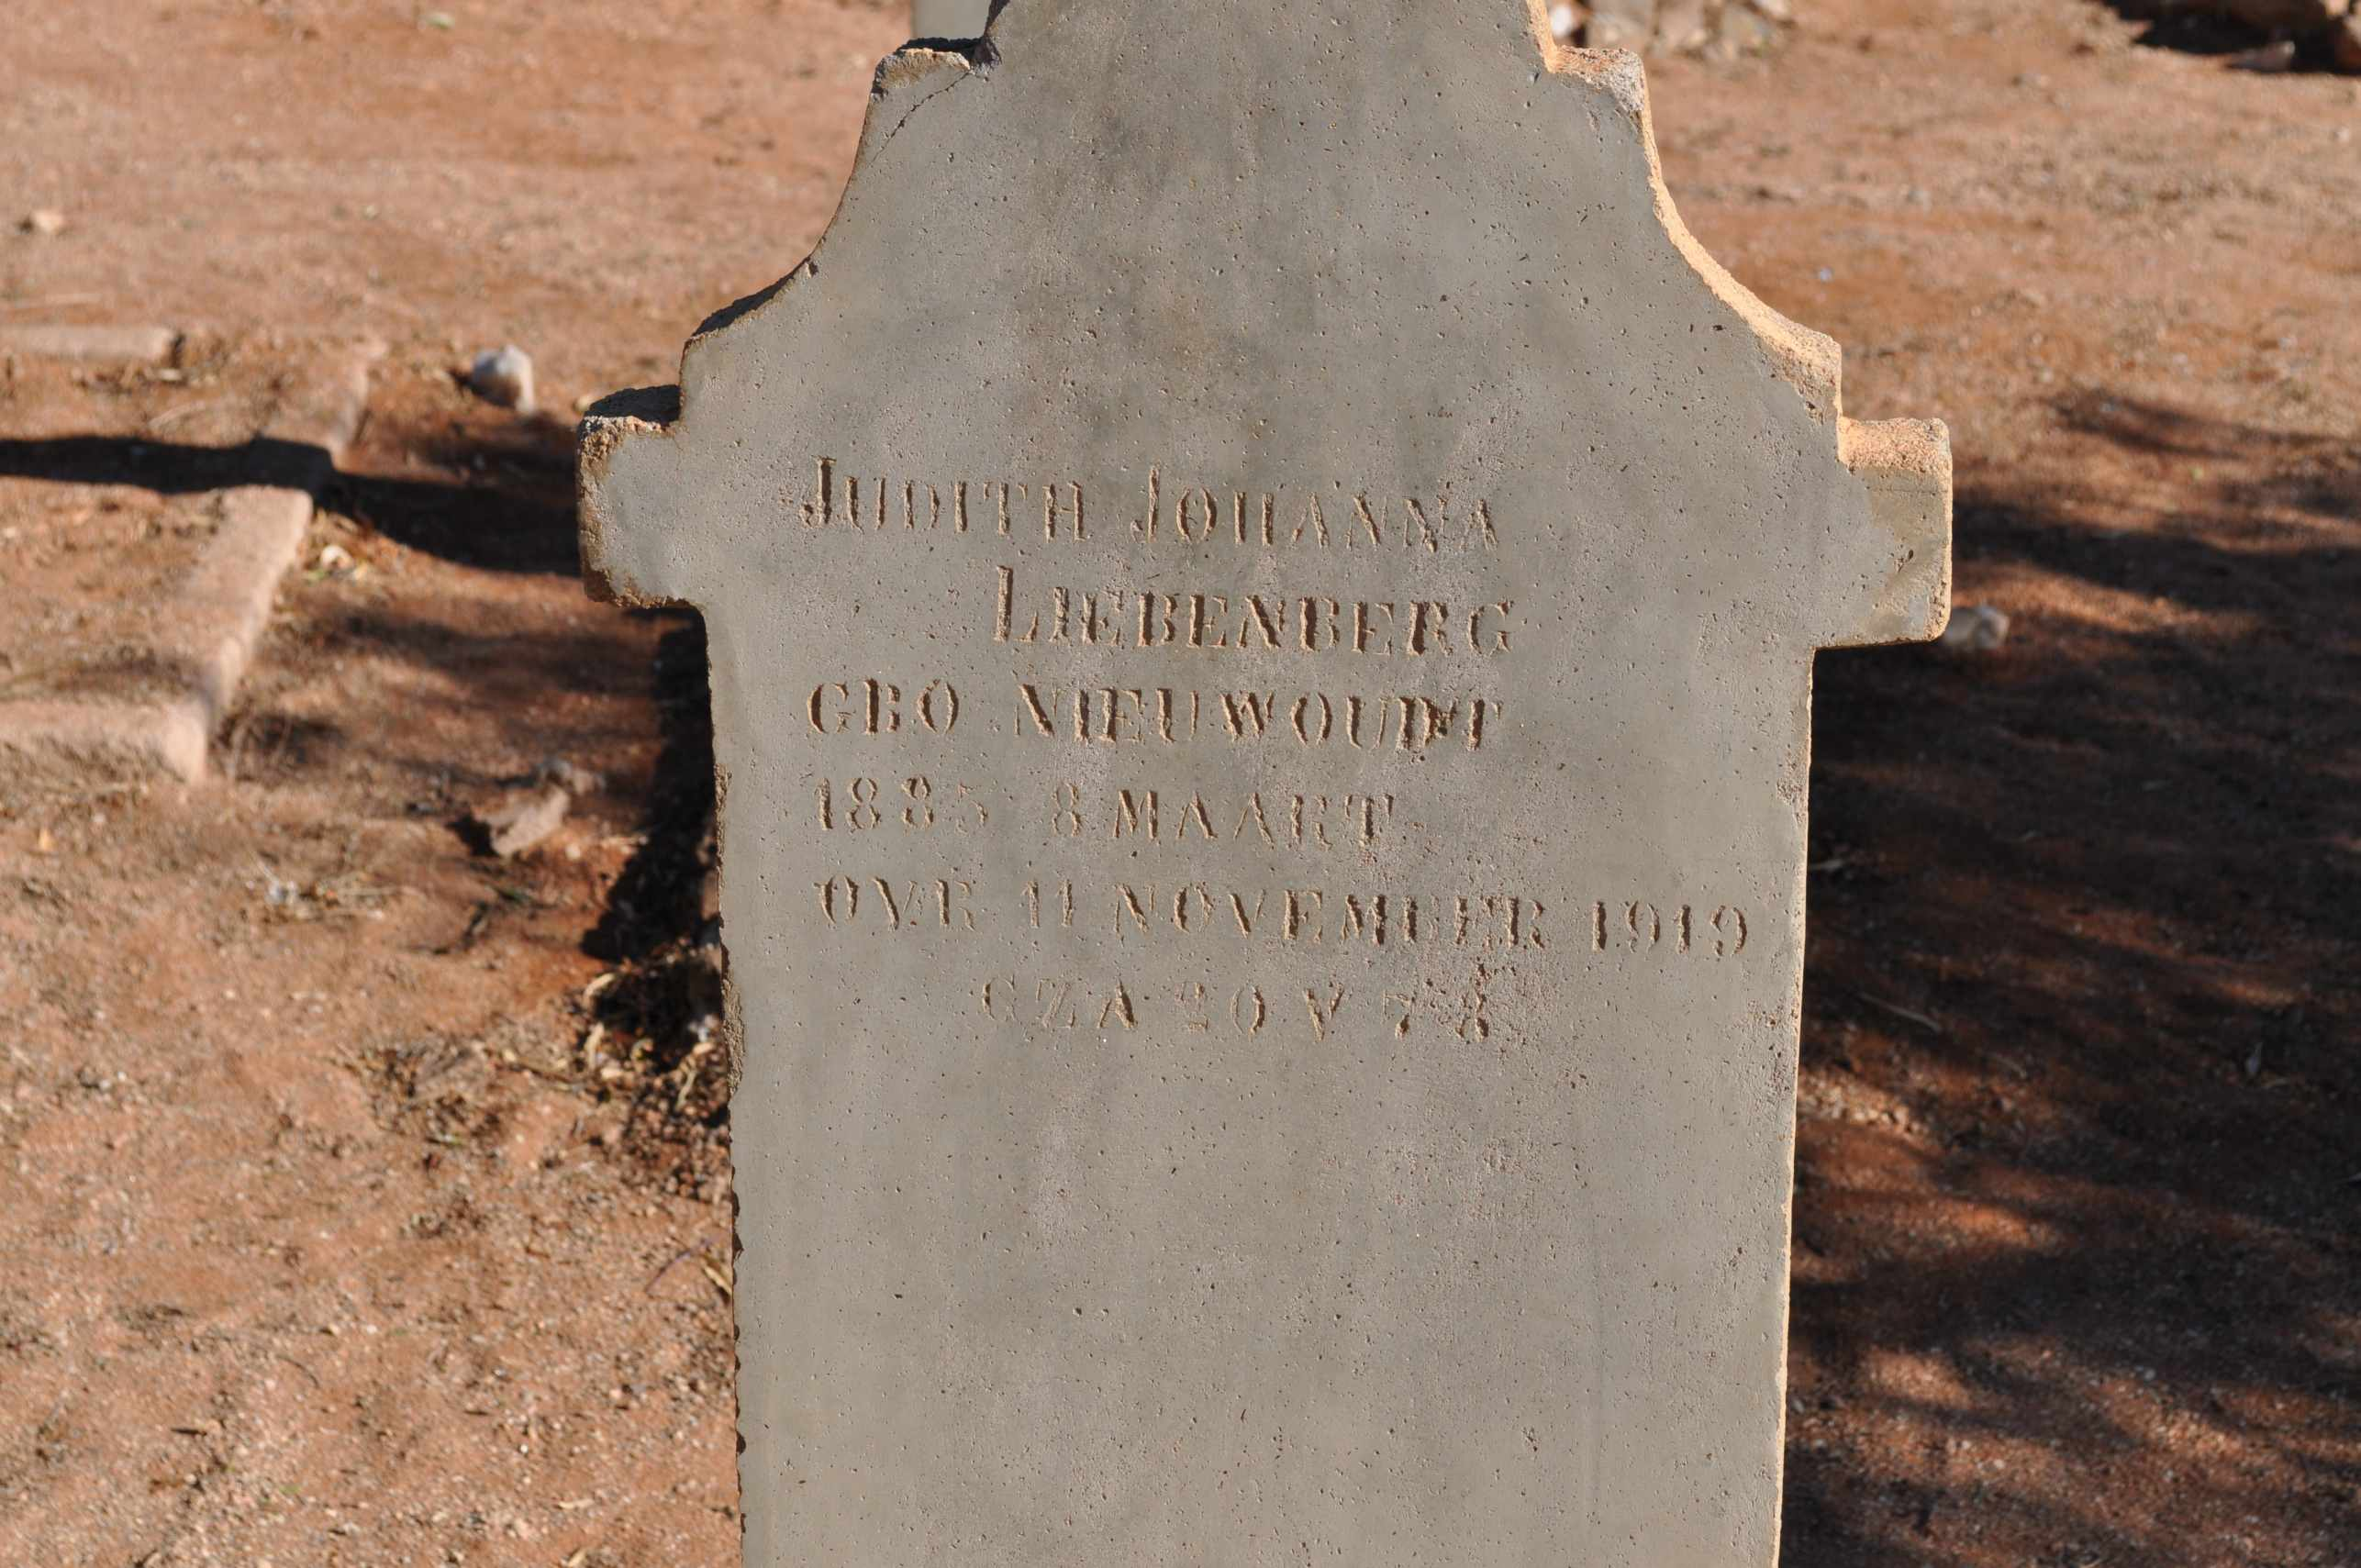 Liebenberg, Judith Johanna nee Niewoudt born 08 March 1885 died 11 November 1919